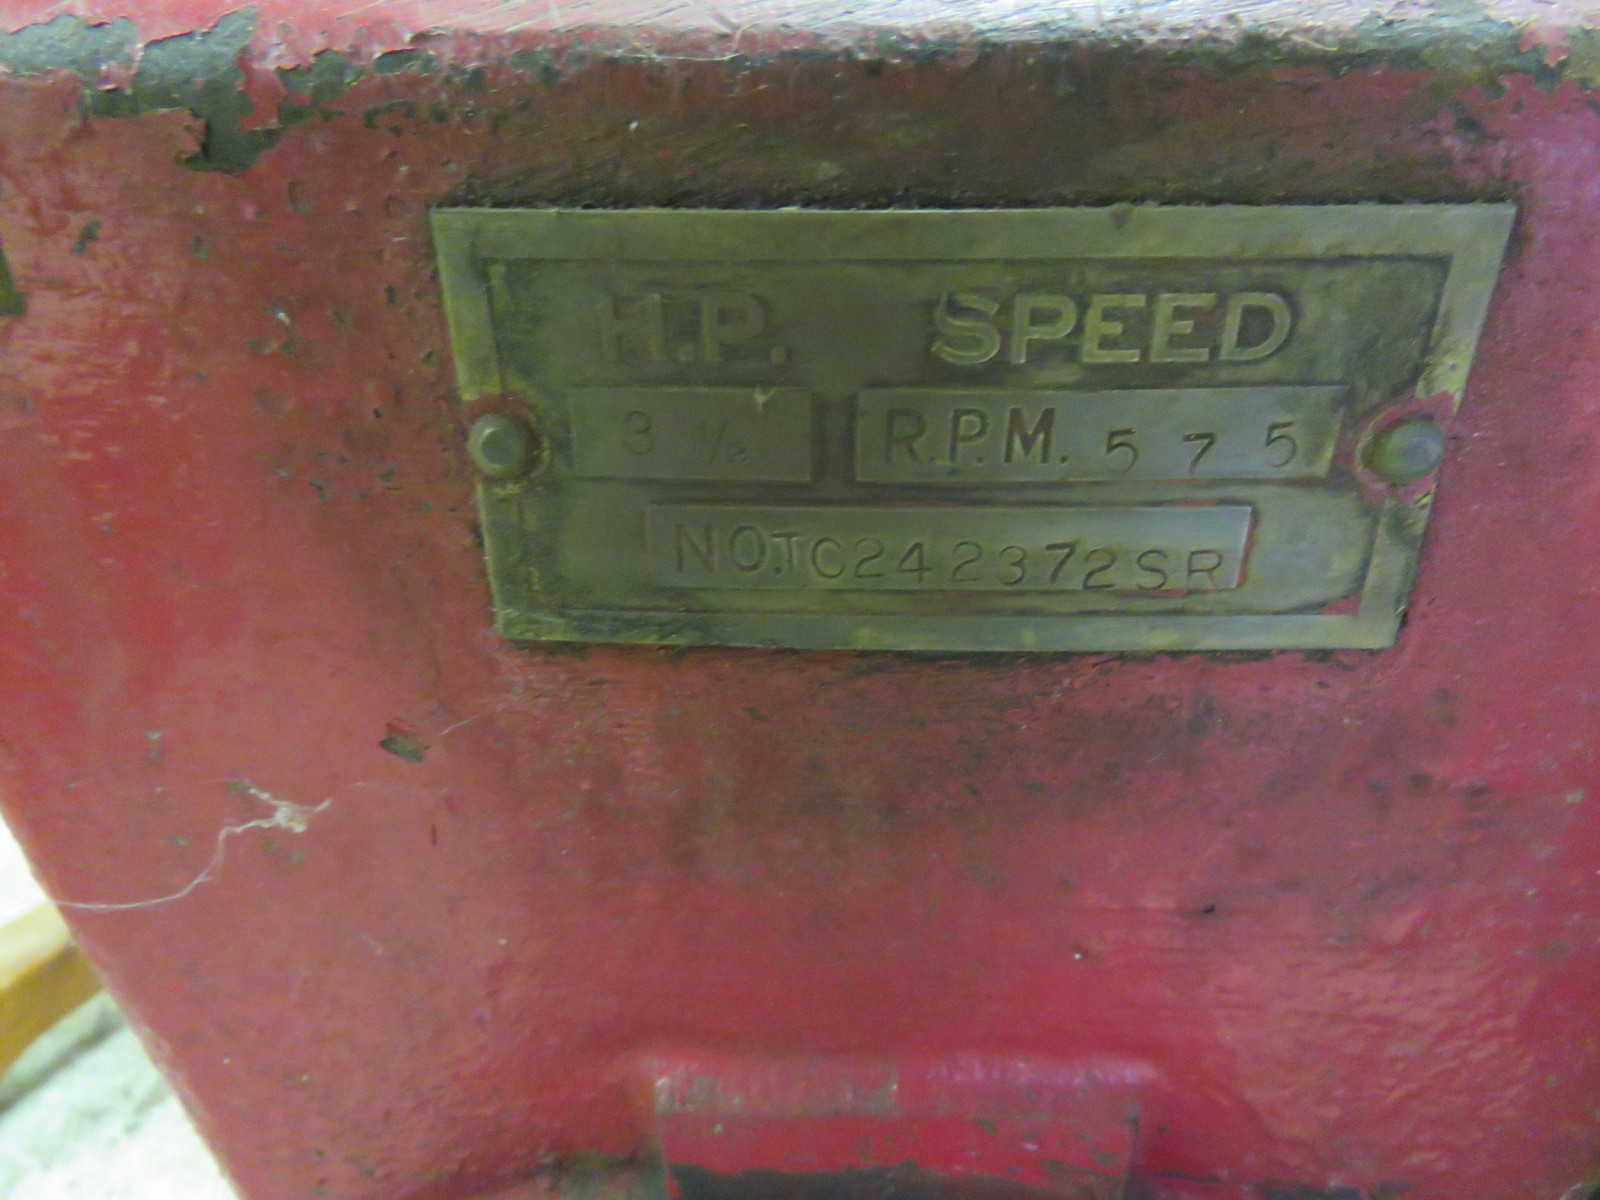 Stover 3 1/2 hp Stationary Engine - Image 3